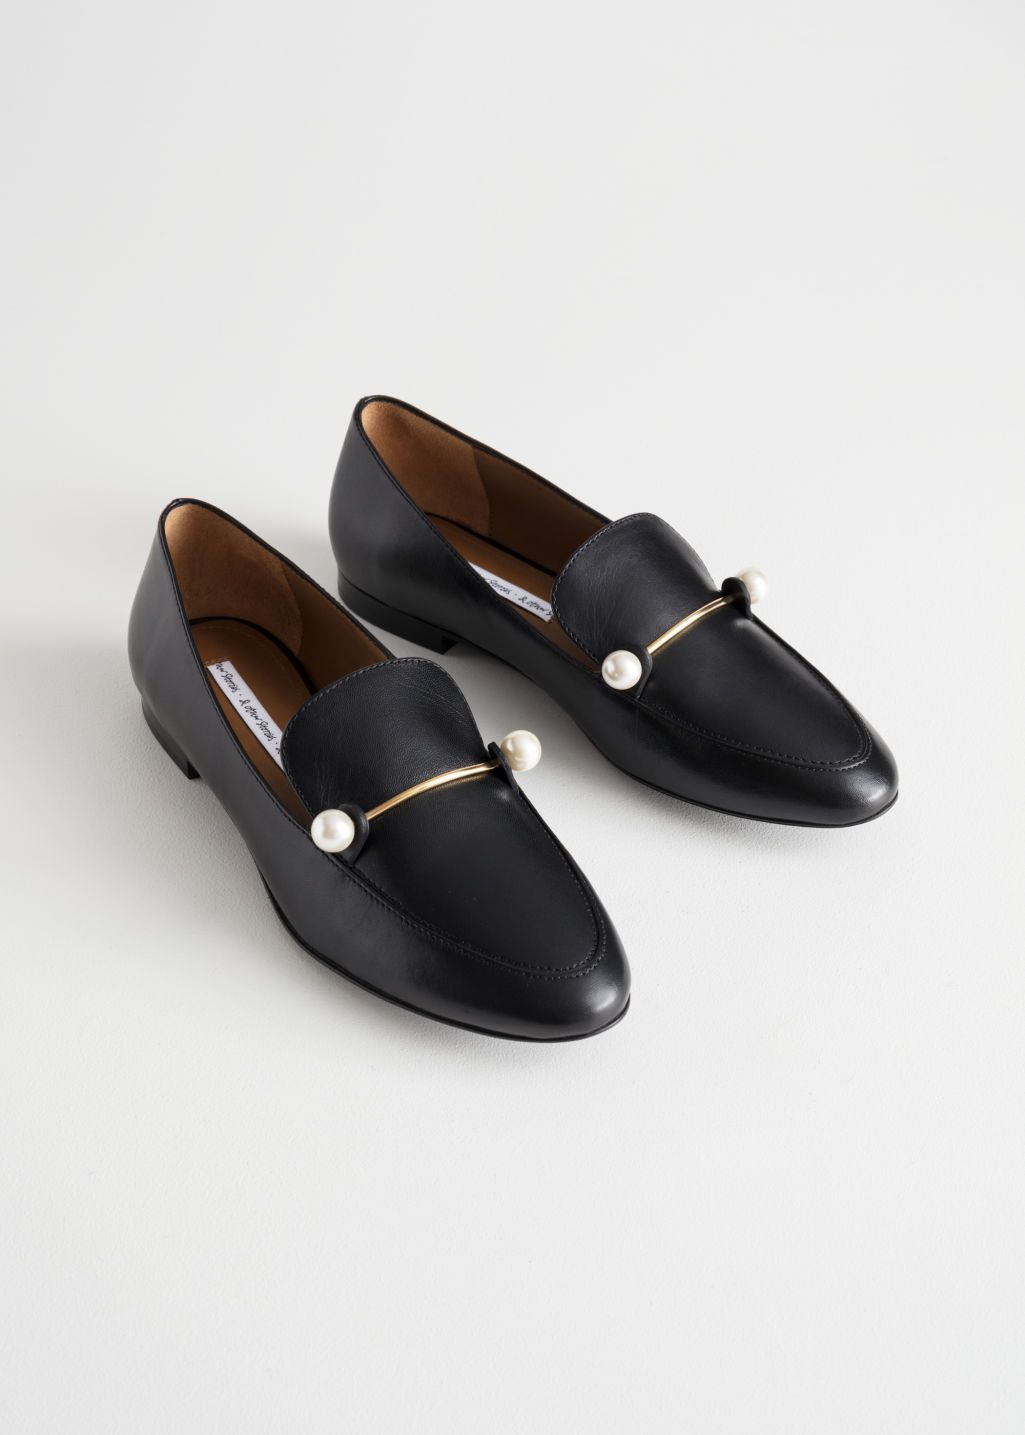 Pdp Black Loafers Women Loafers Buckle Loafers [ 1435 x 1025 Pixel ]